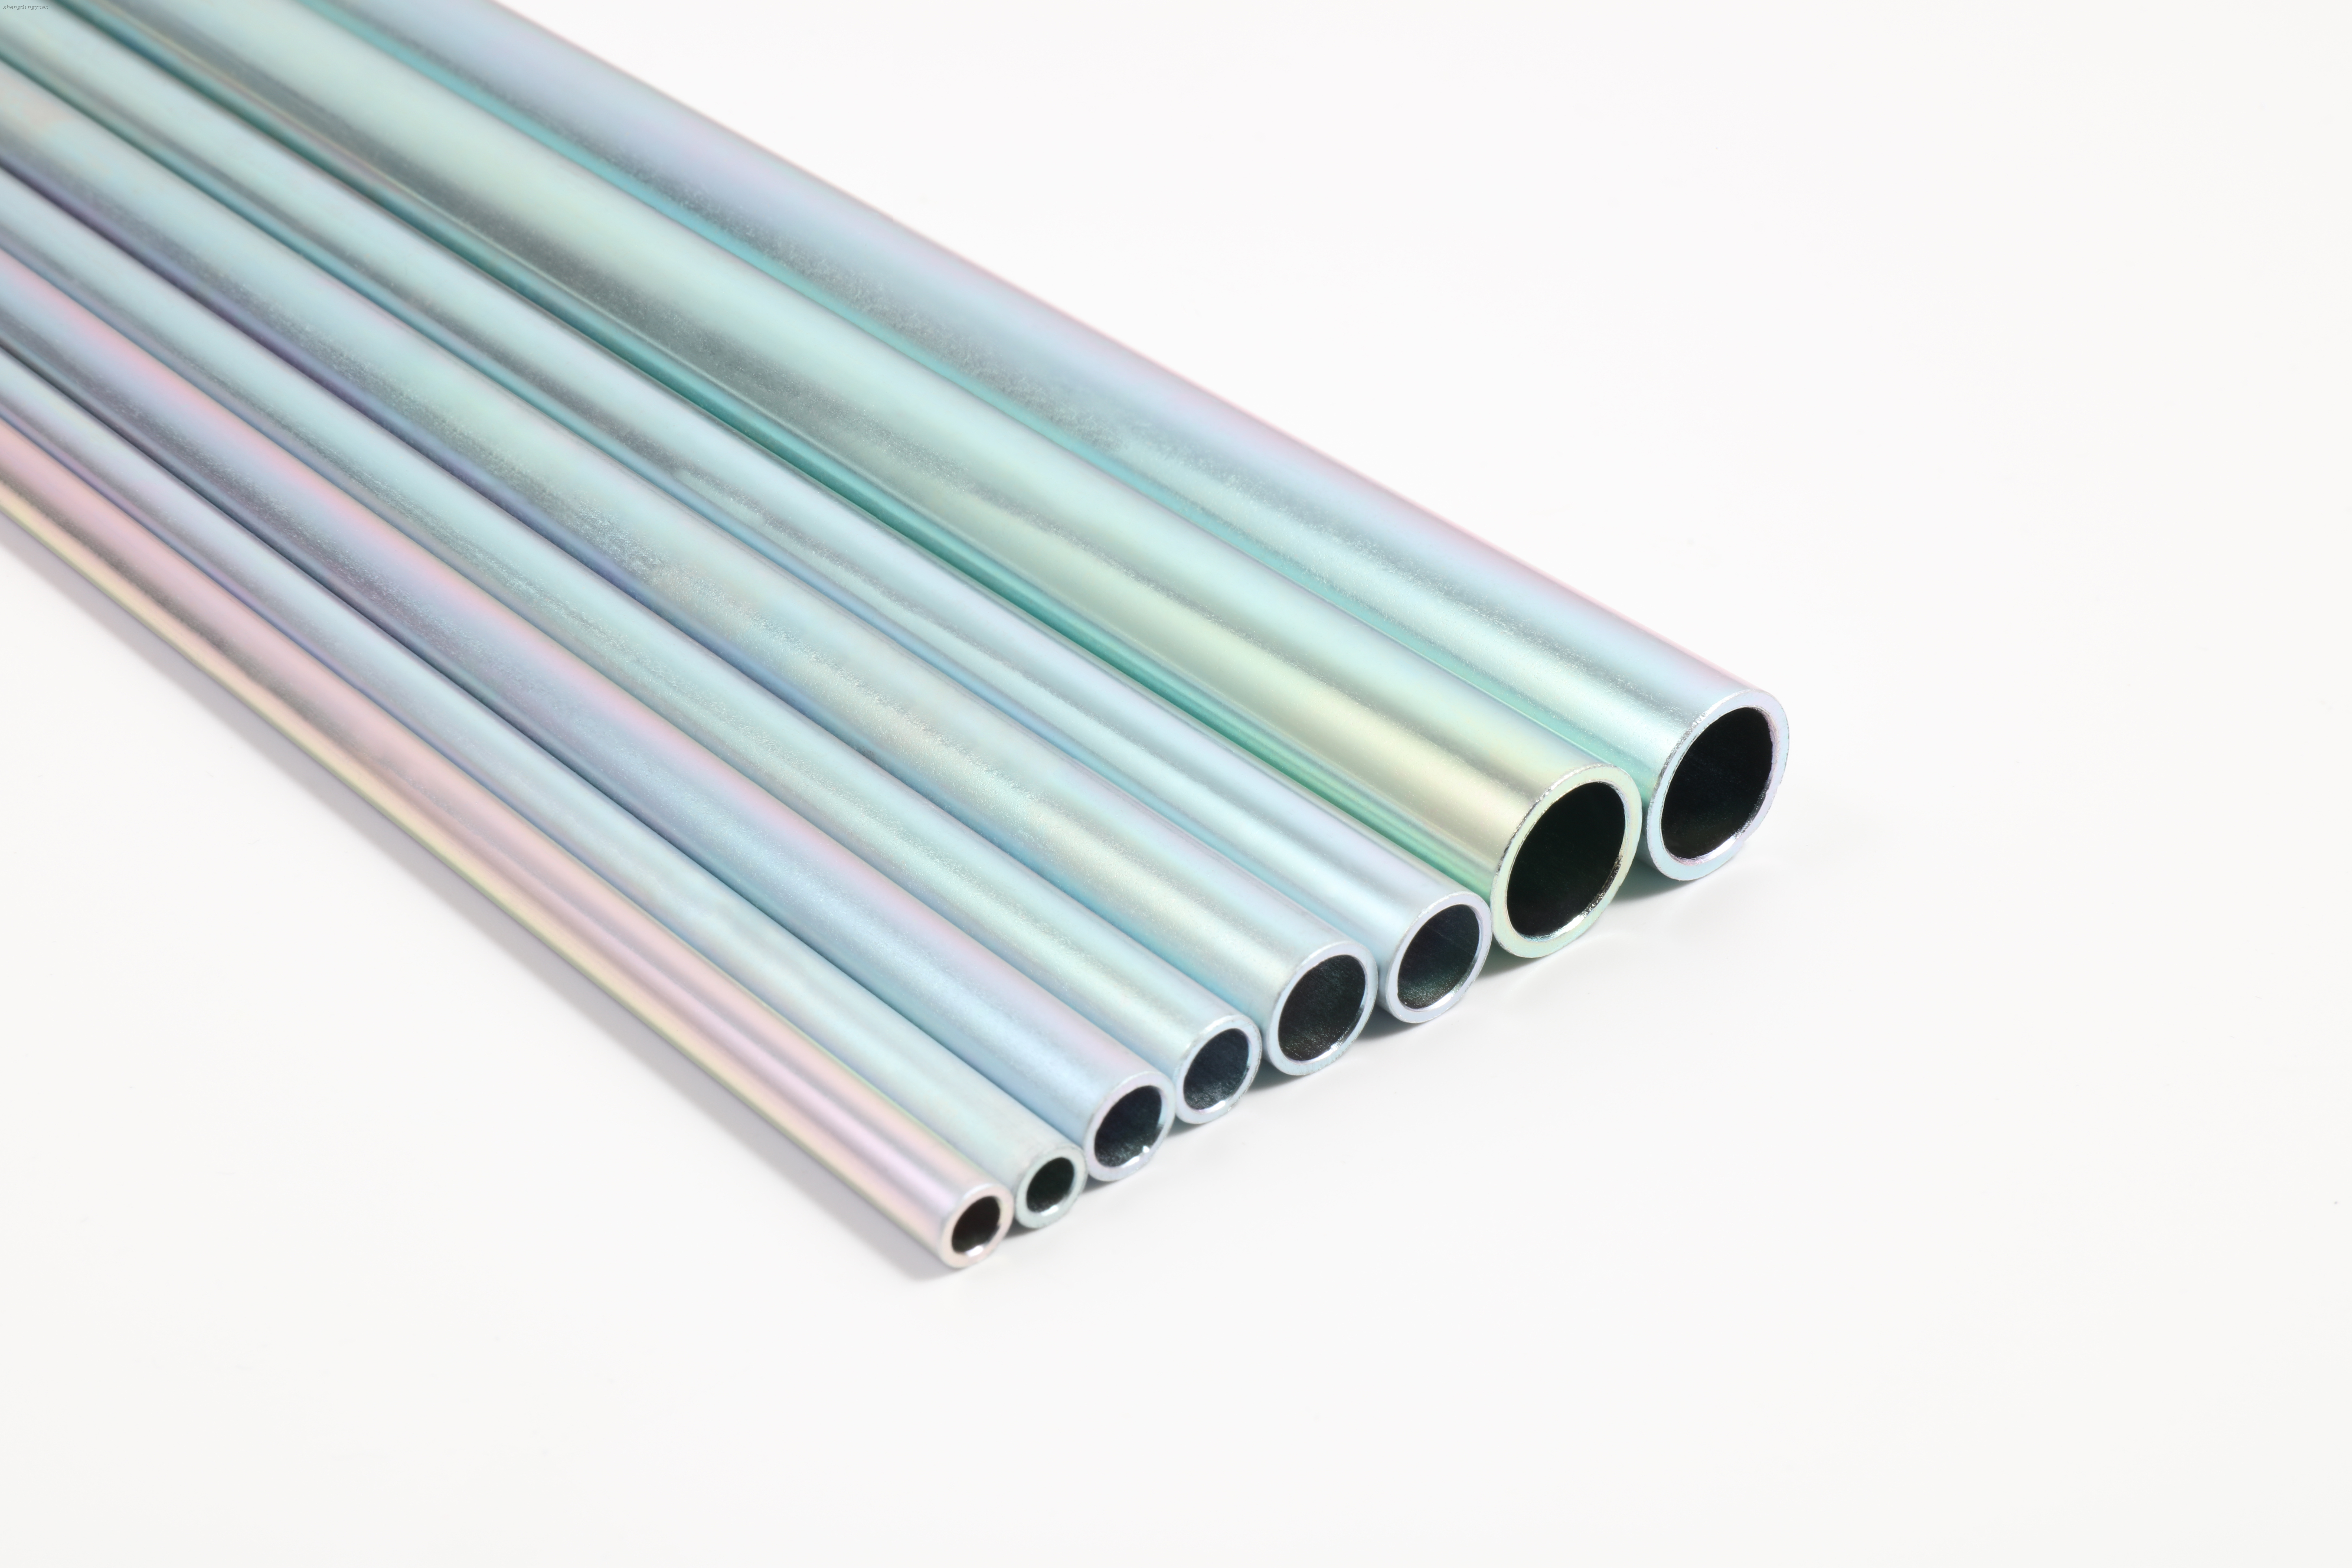 High Percision Galvanized Steel Tube